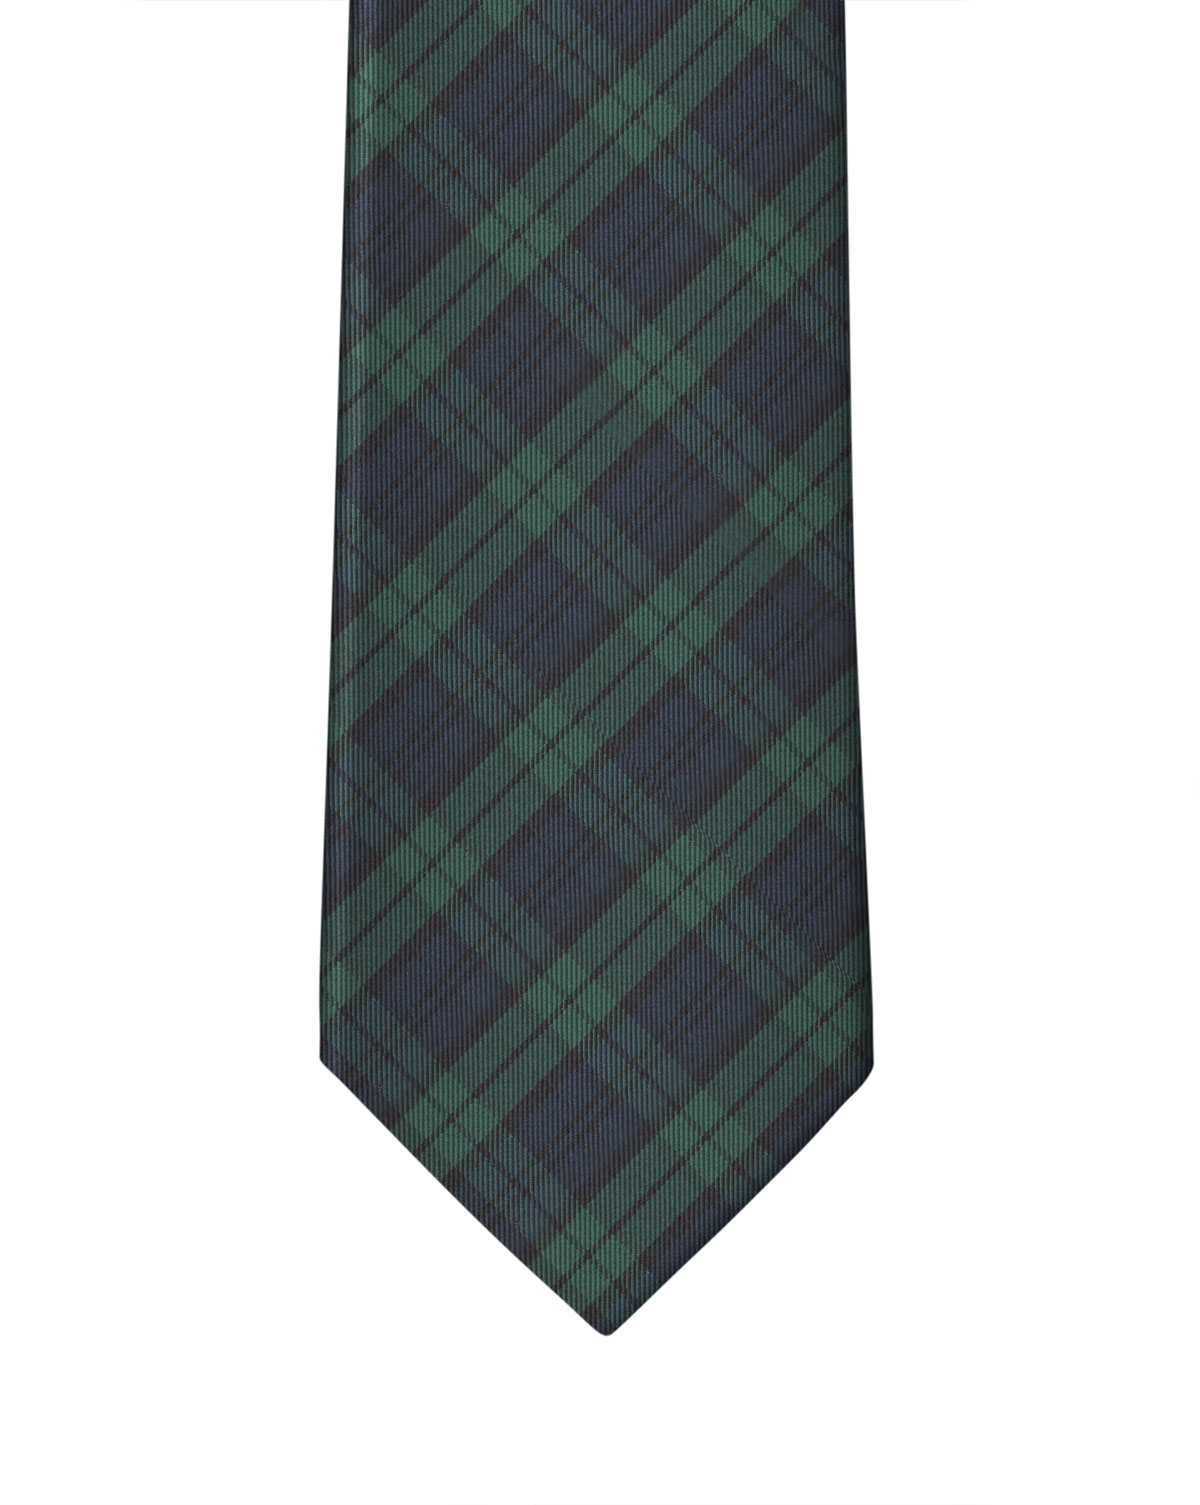 Green & Black Blackwatch Plaid Necktie